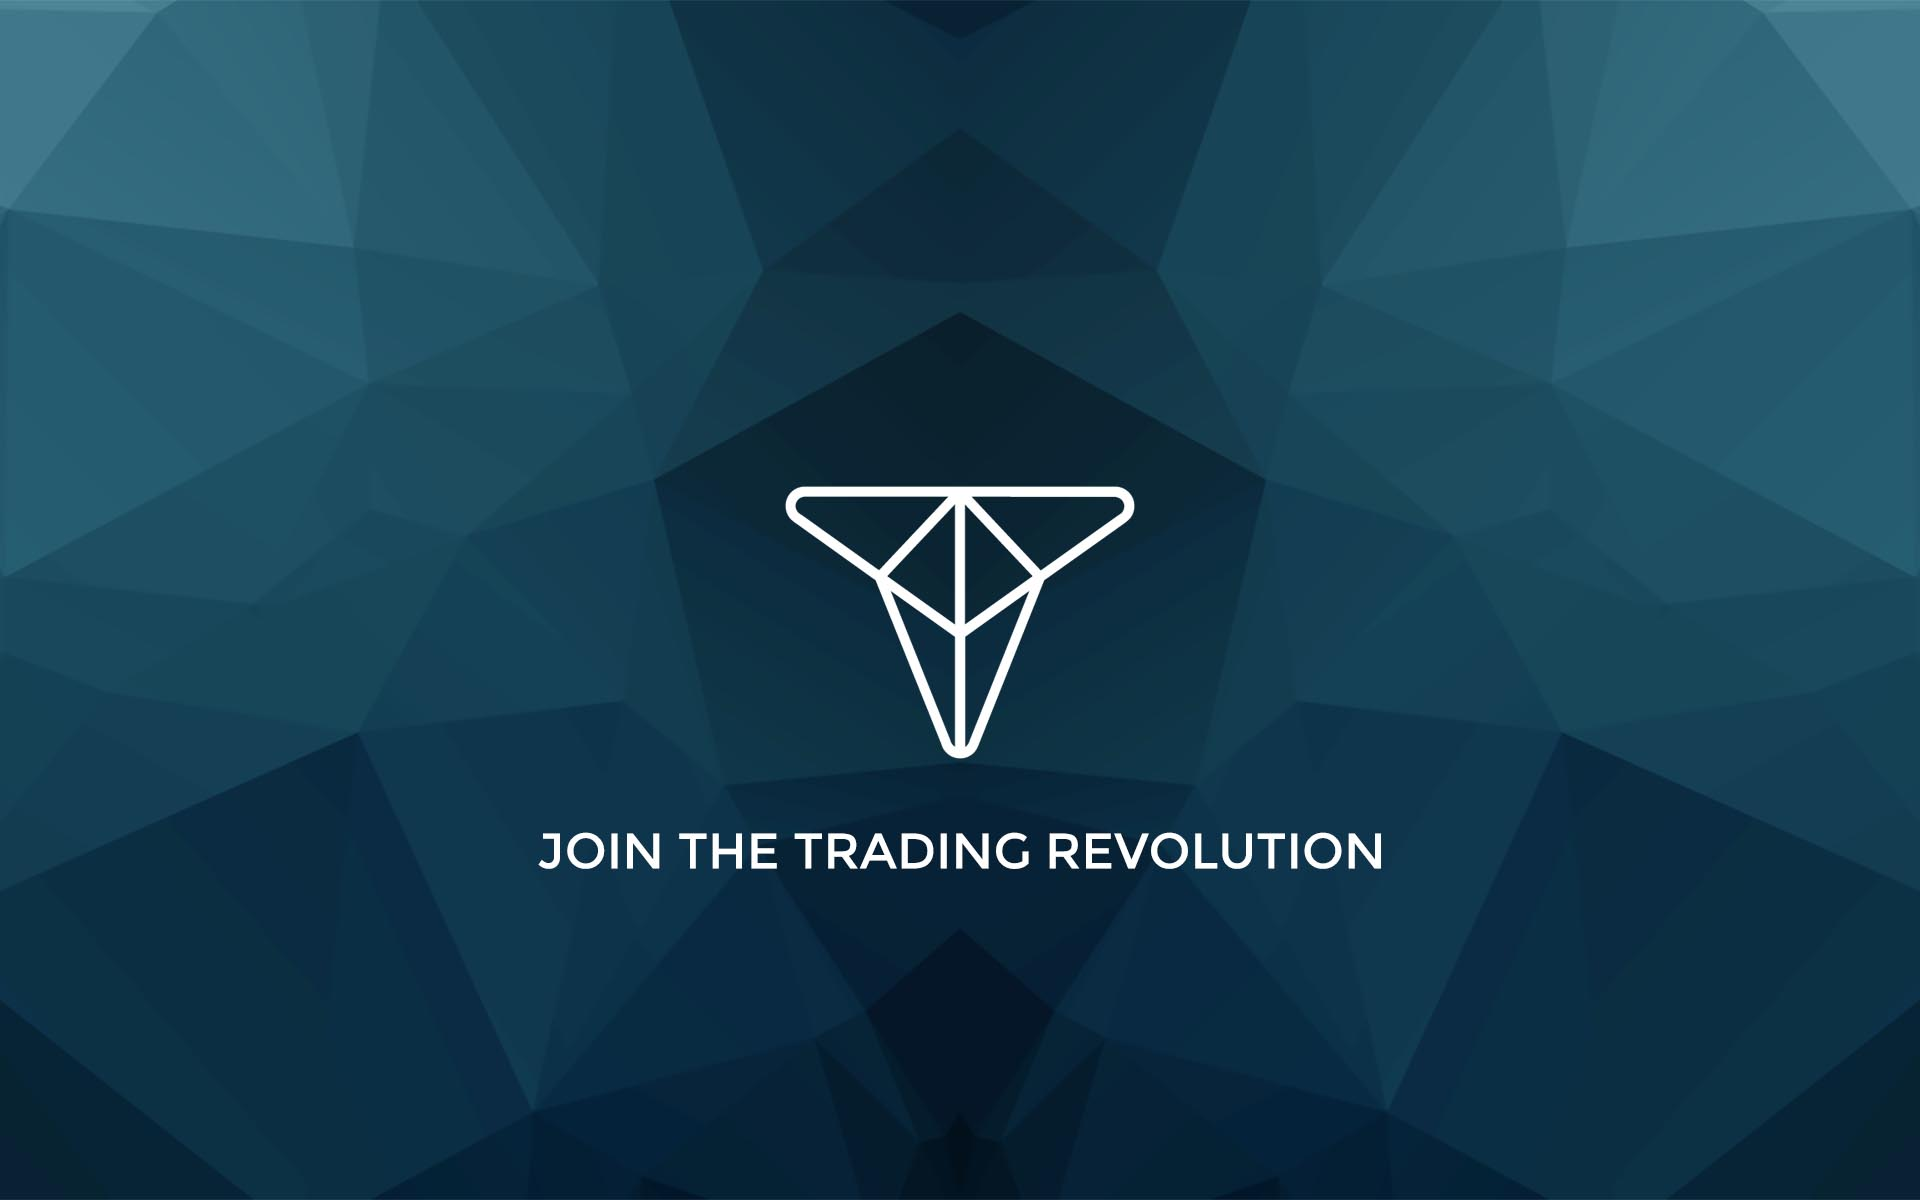 trade.io Appoints Banking Veteran David Hannigan to Run OTC Desk